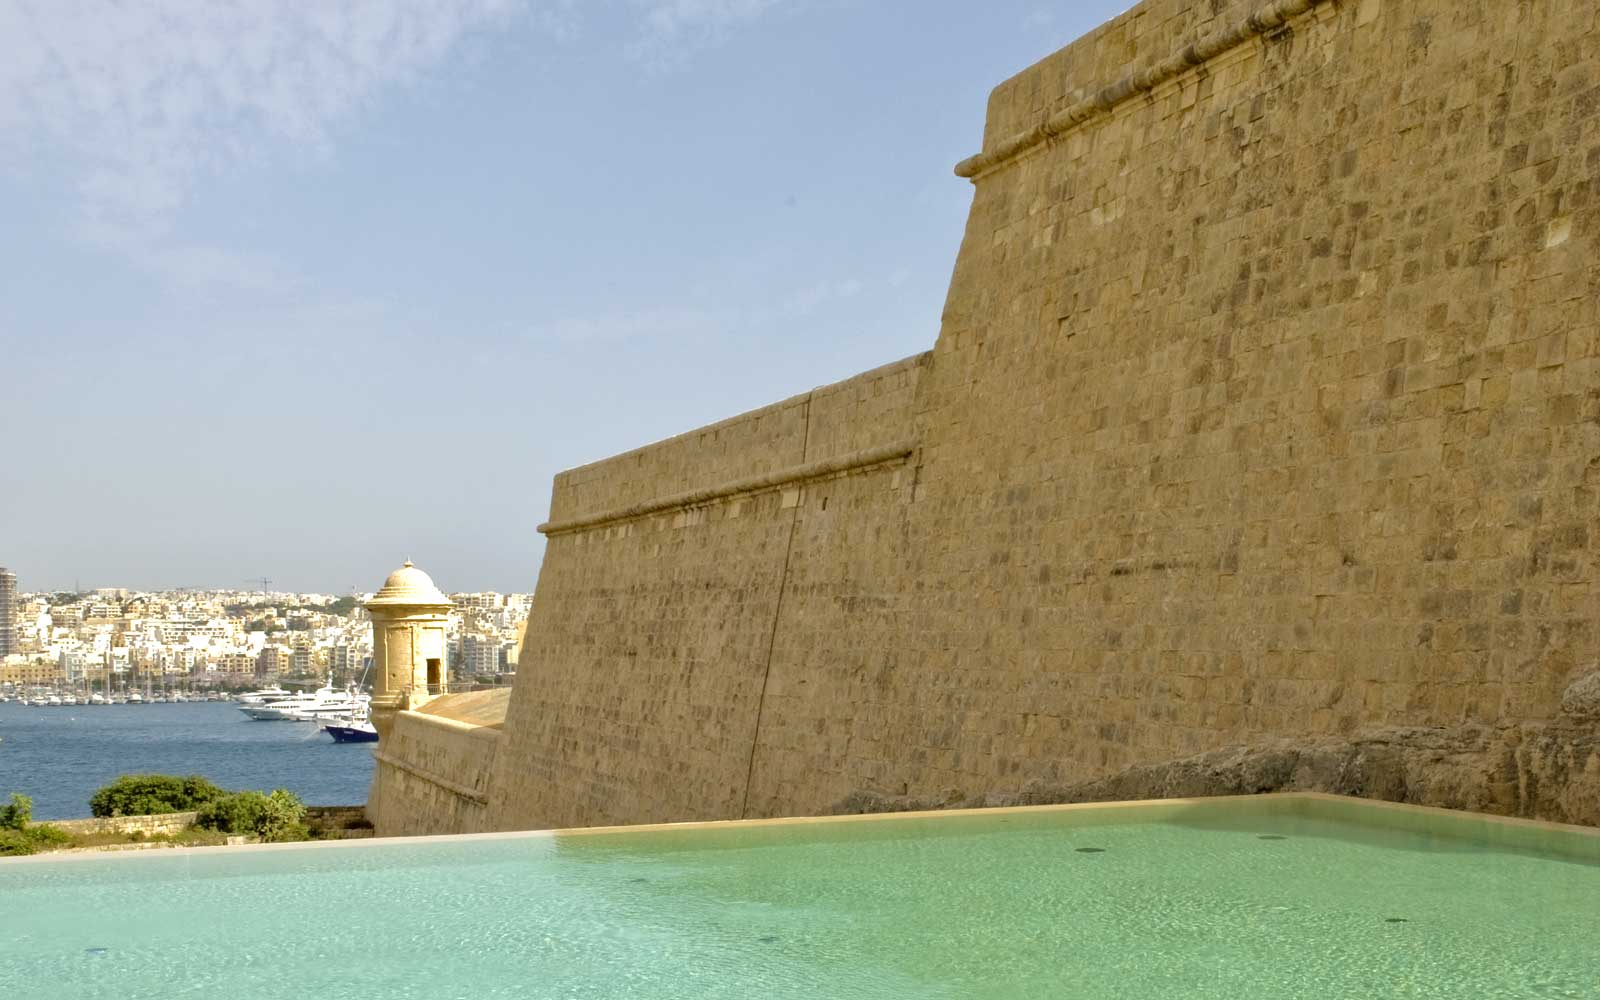 How Malta Became the Mediterranean's Latest Hot Spot